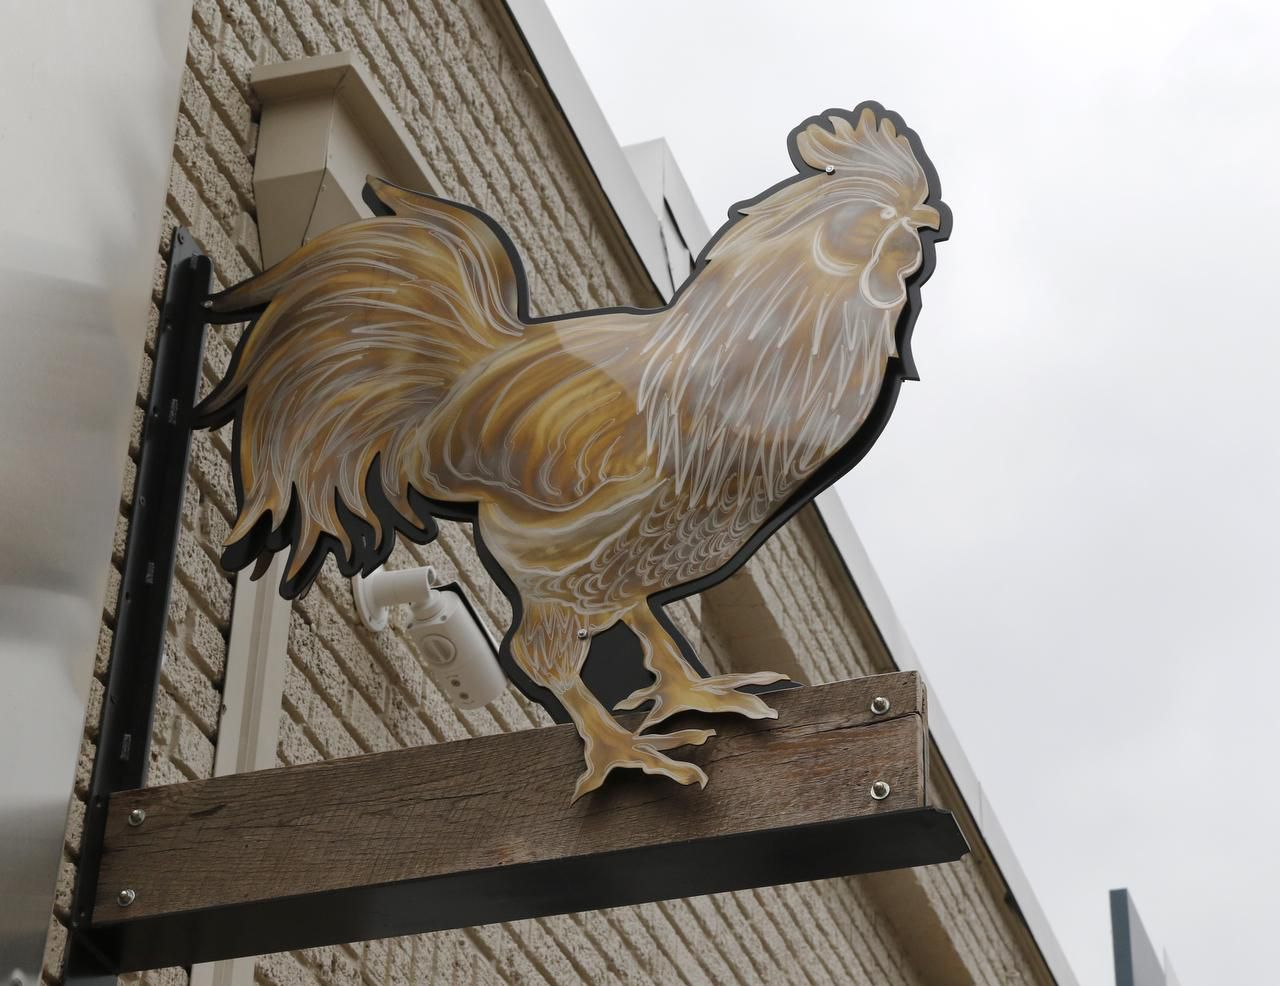 Gene Street wanted to do a chicken restaurant when he cofounded the Black-Eyed Pea, but his mother had other ideas.